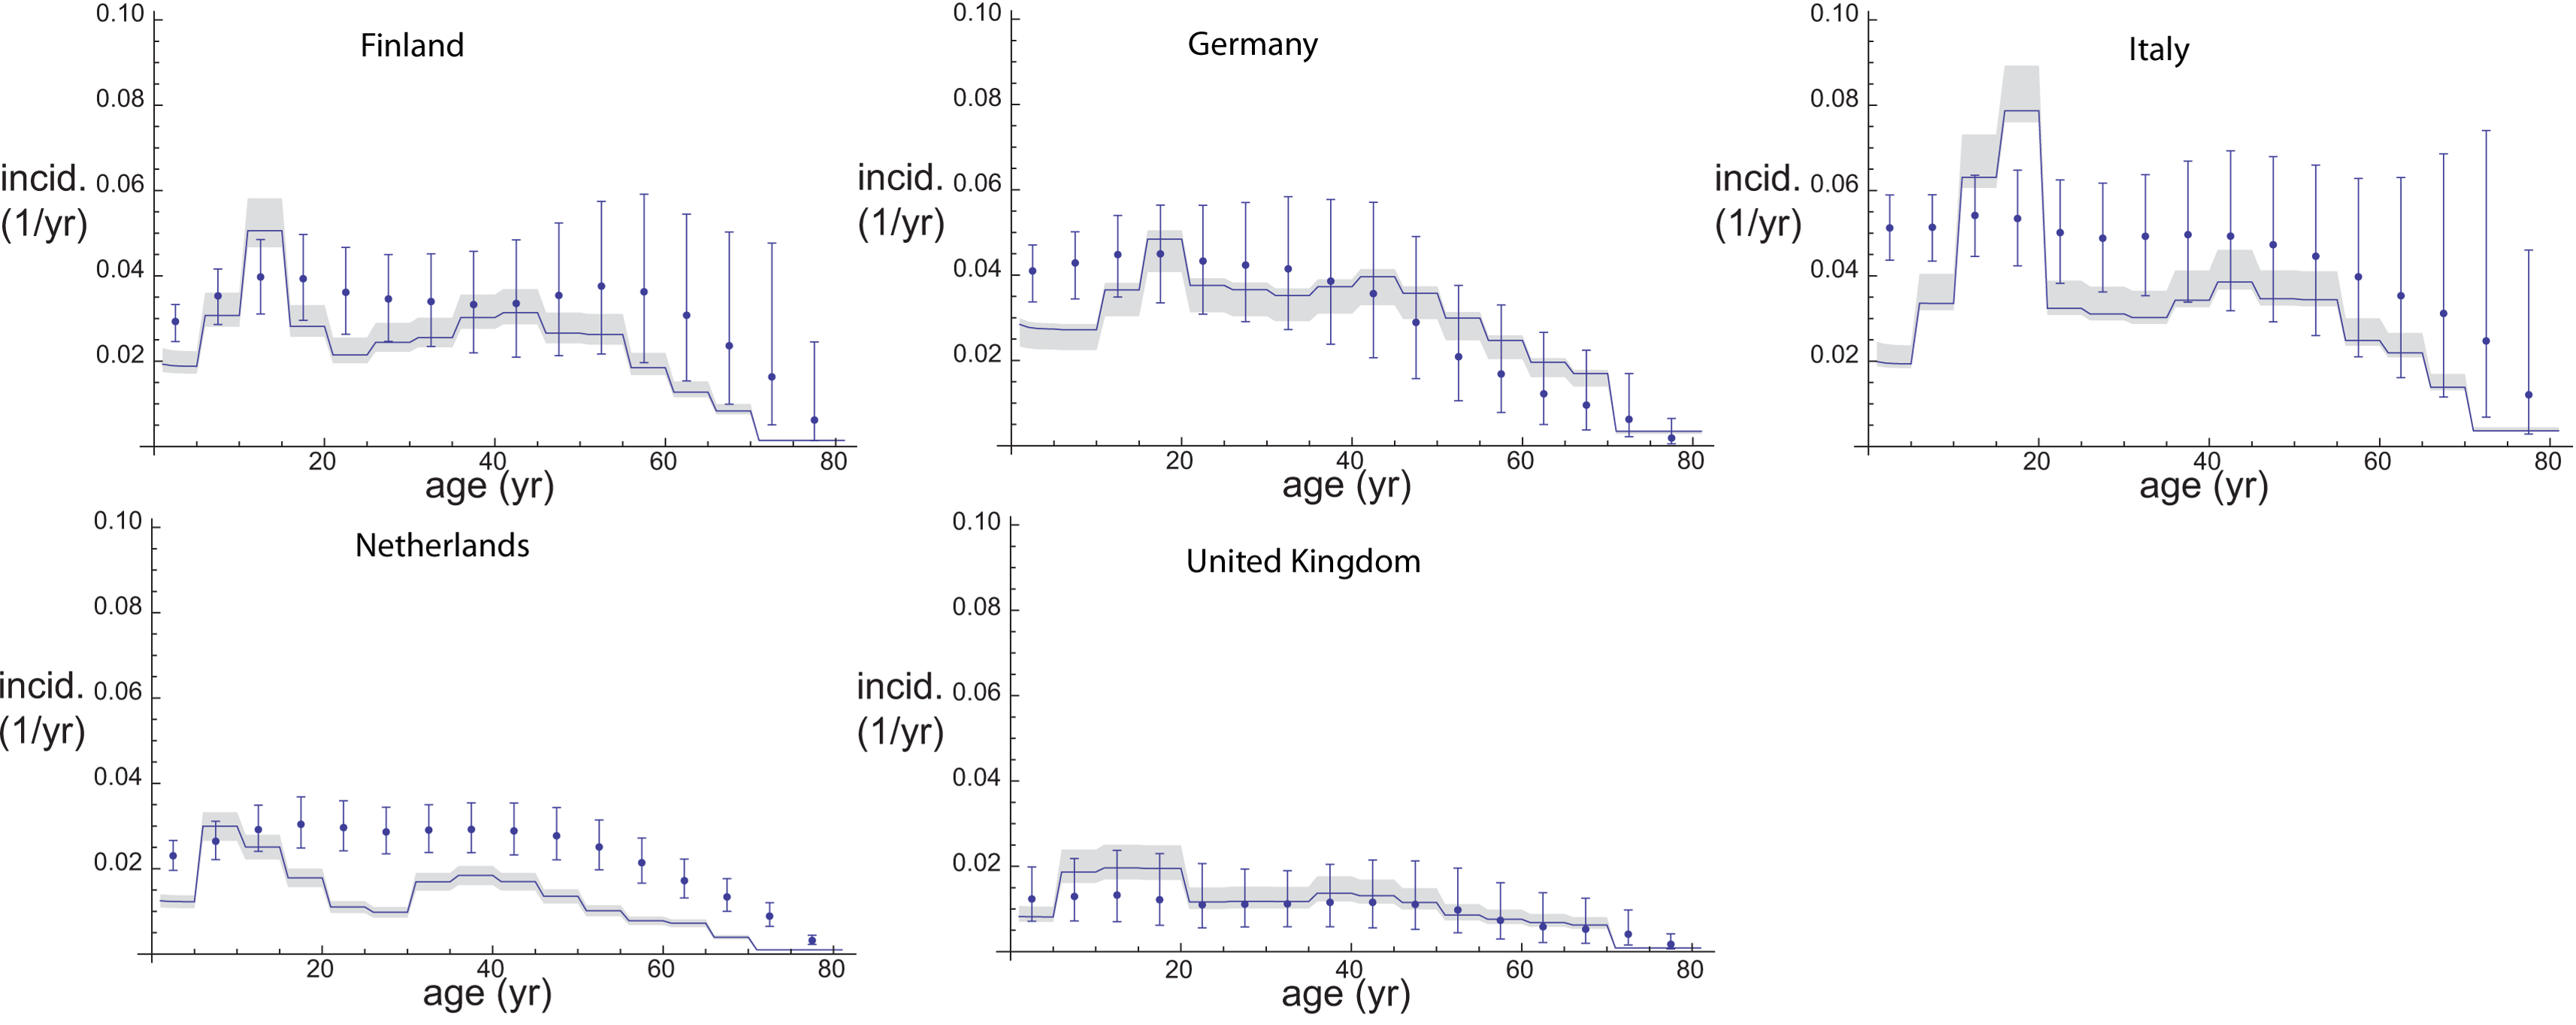 Comparison of incidence estimates from both estimation methods.